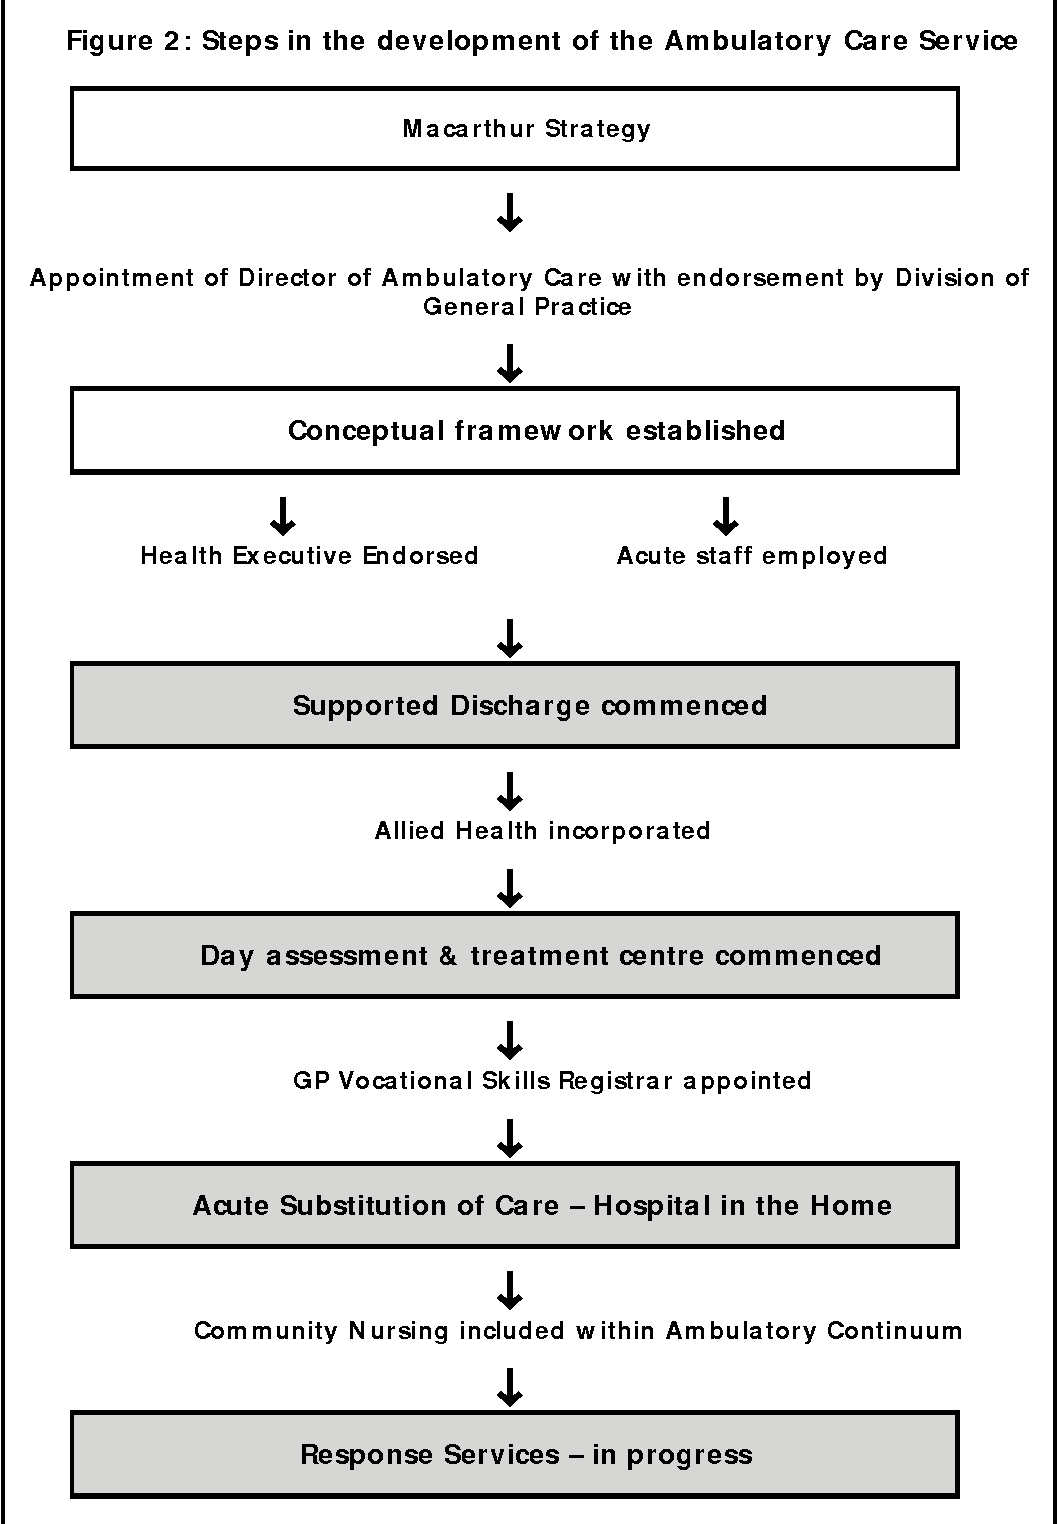 Figure 2 from Macarthur model for ambulatory services  - Semantic